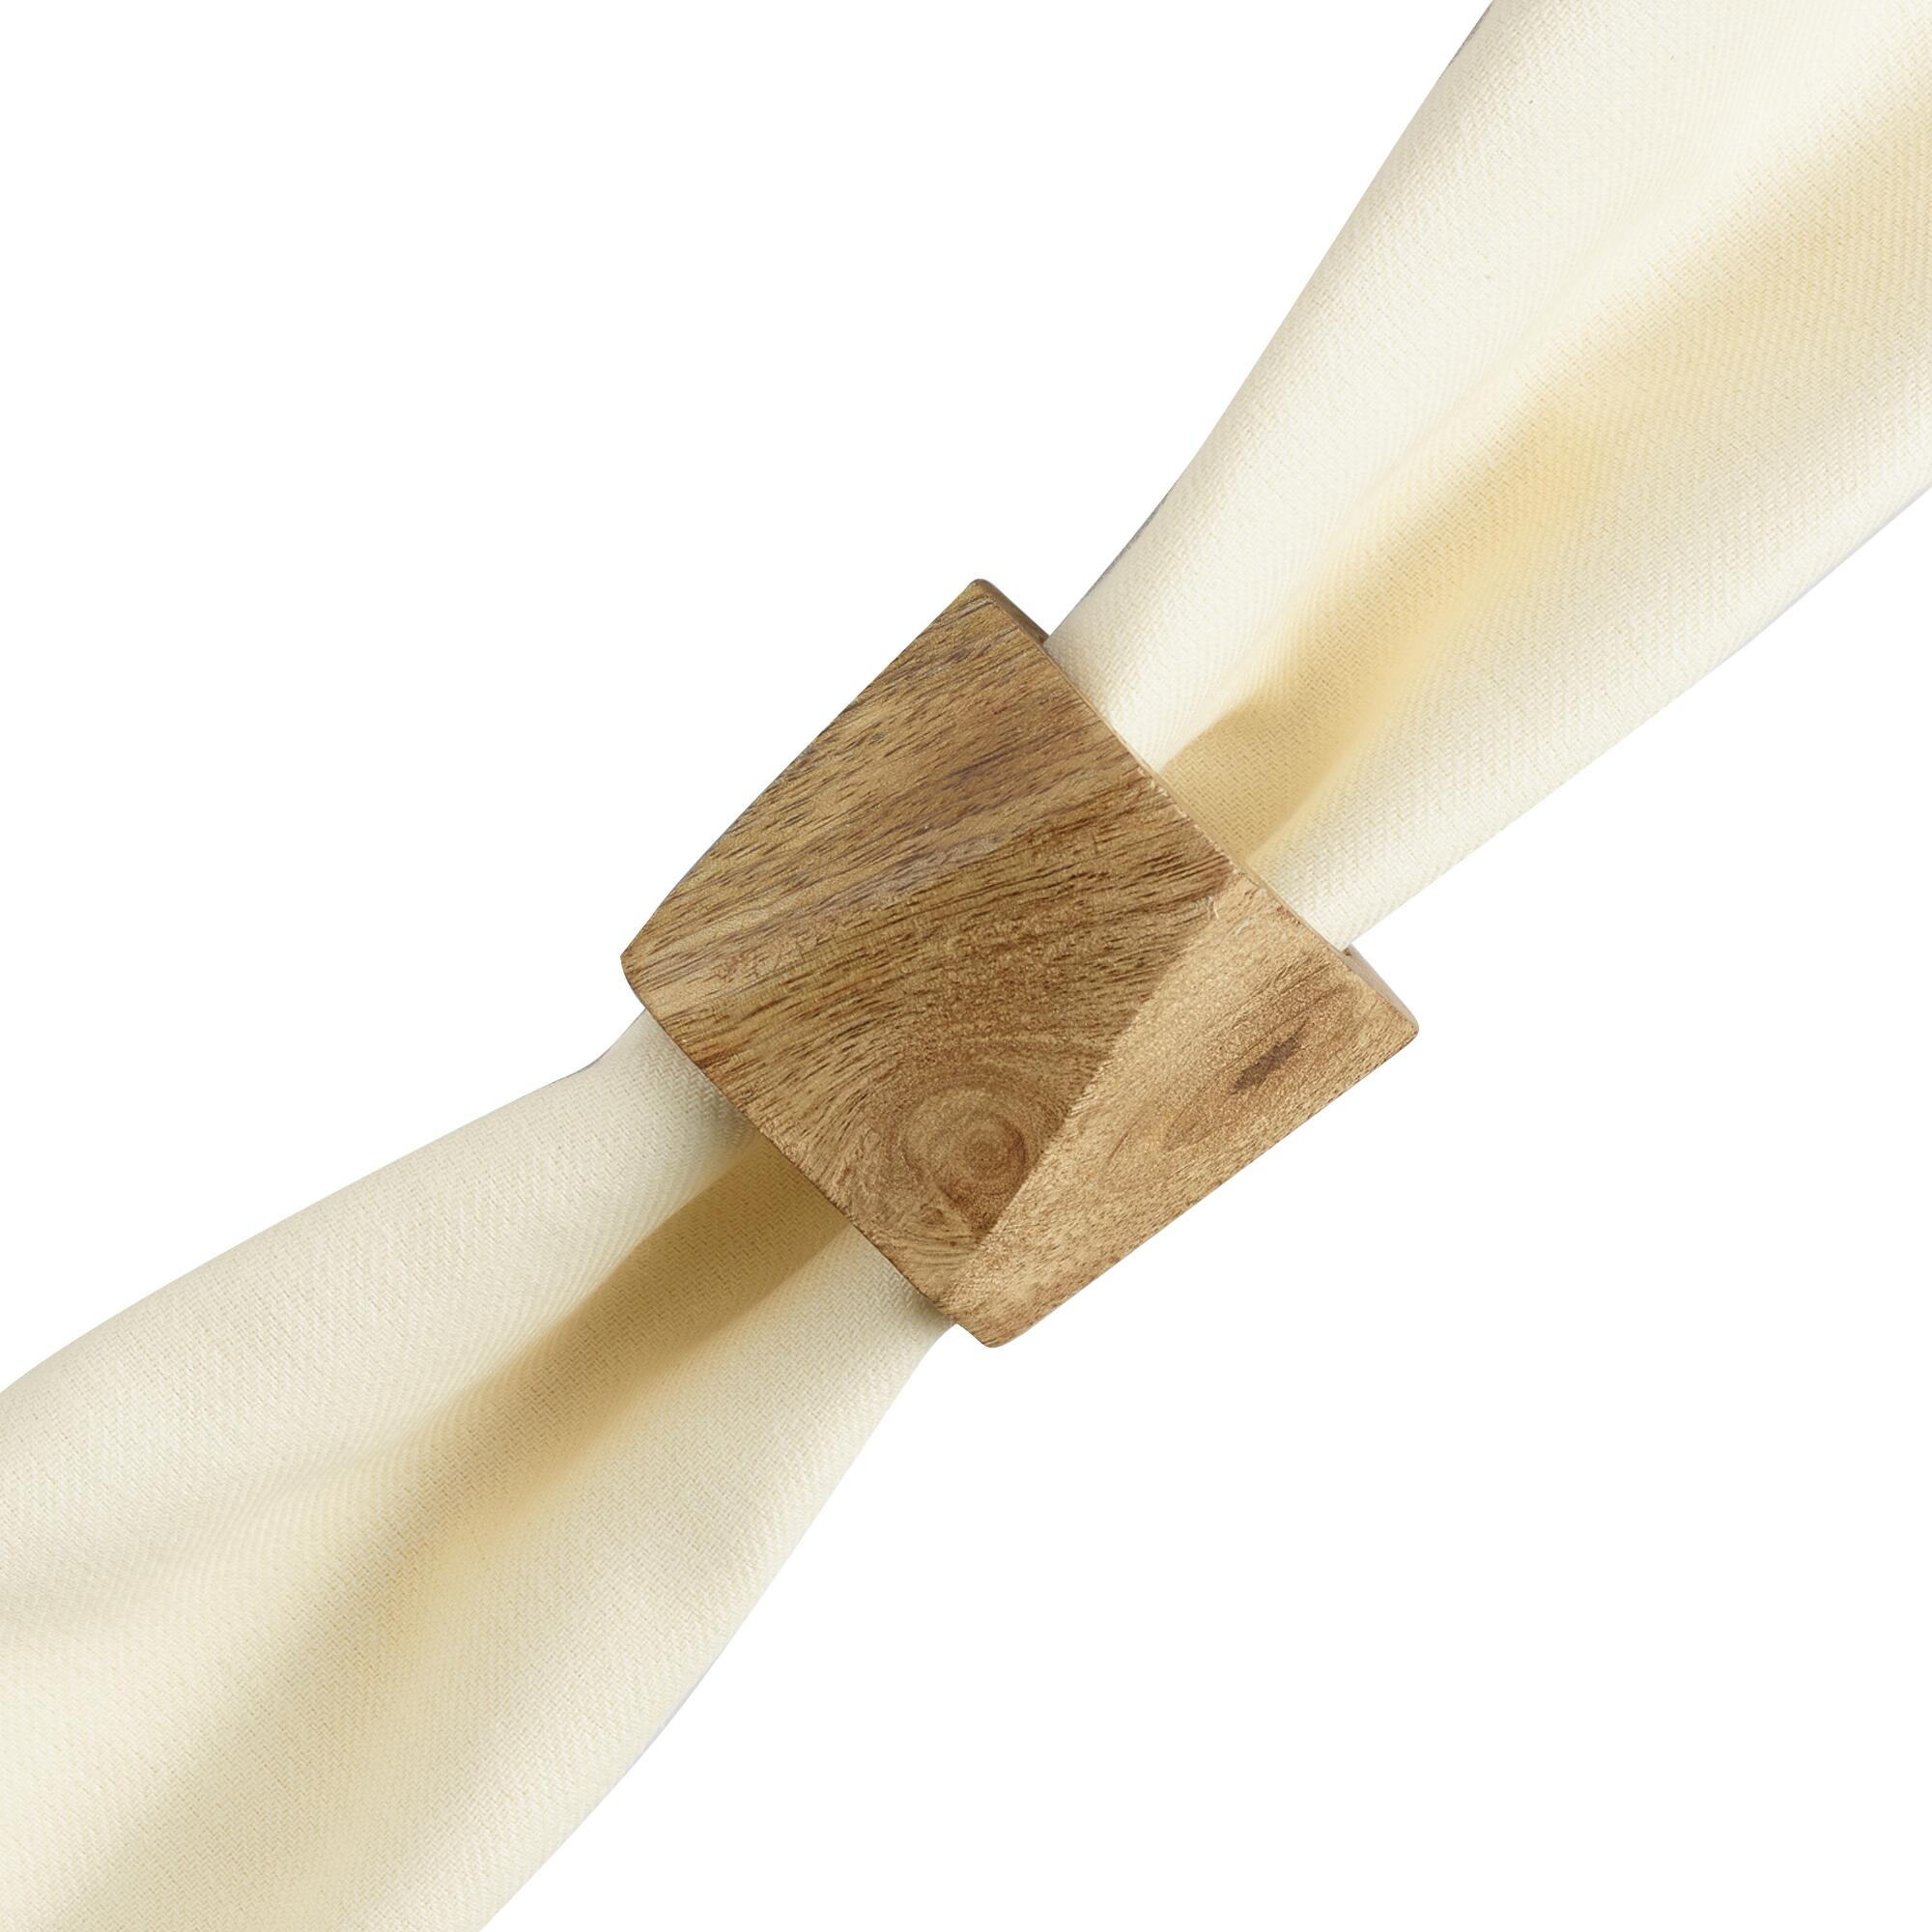 Geometric Wood Napkin Rings, Set of 4 by World Market